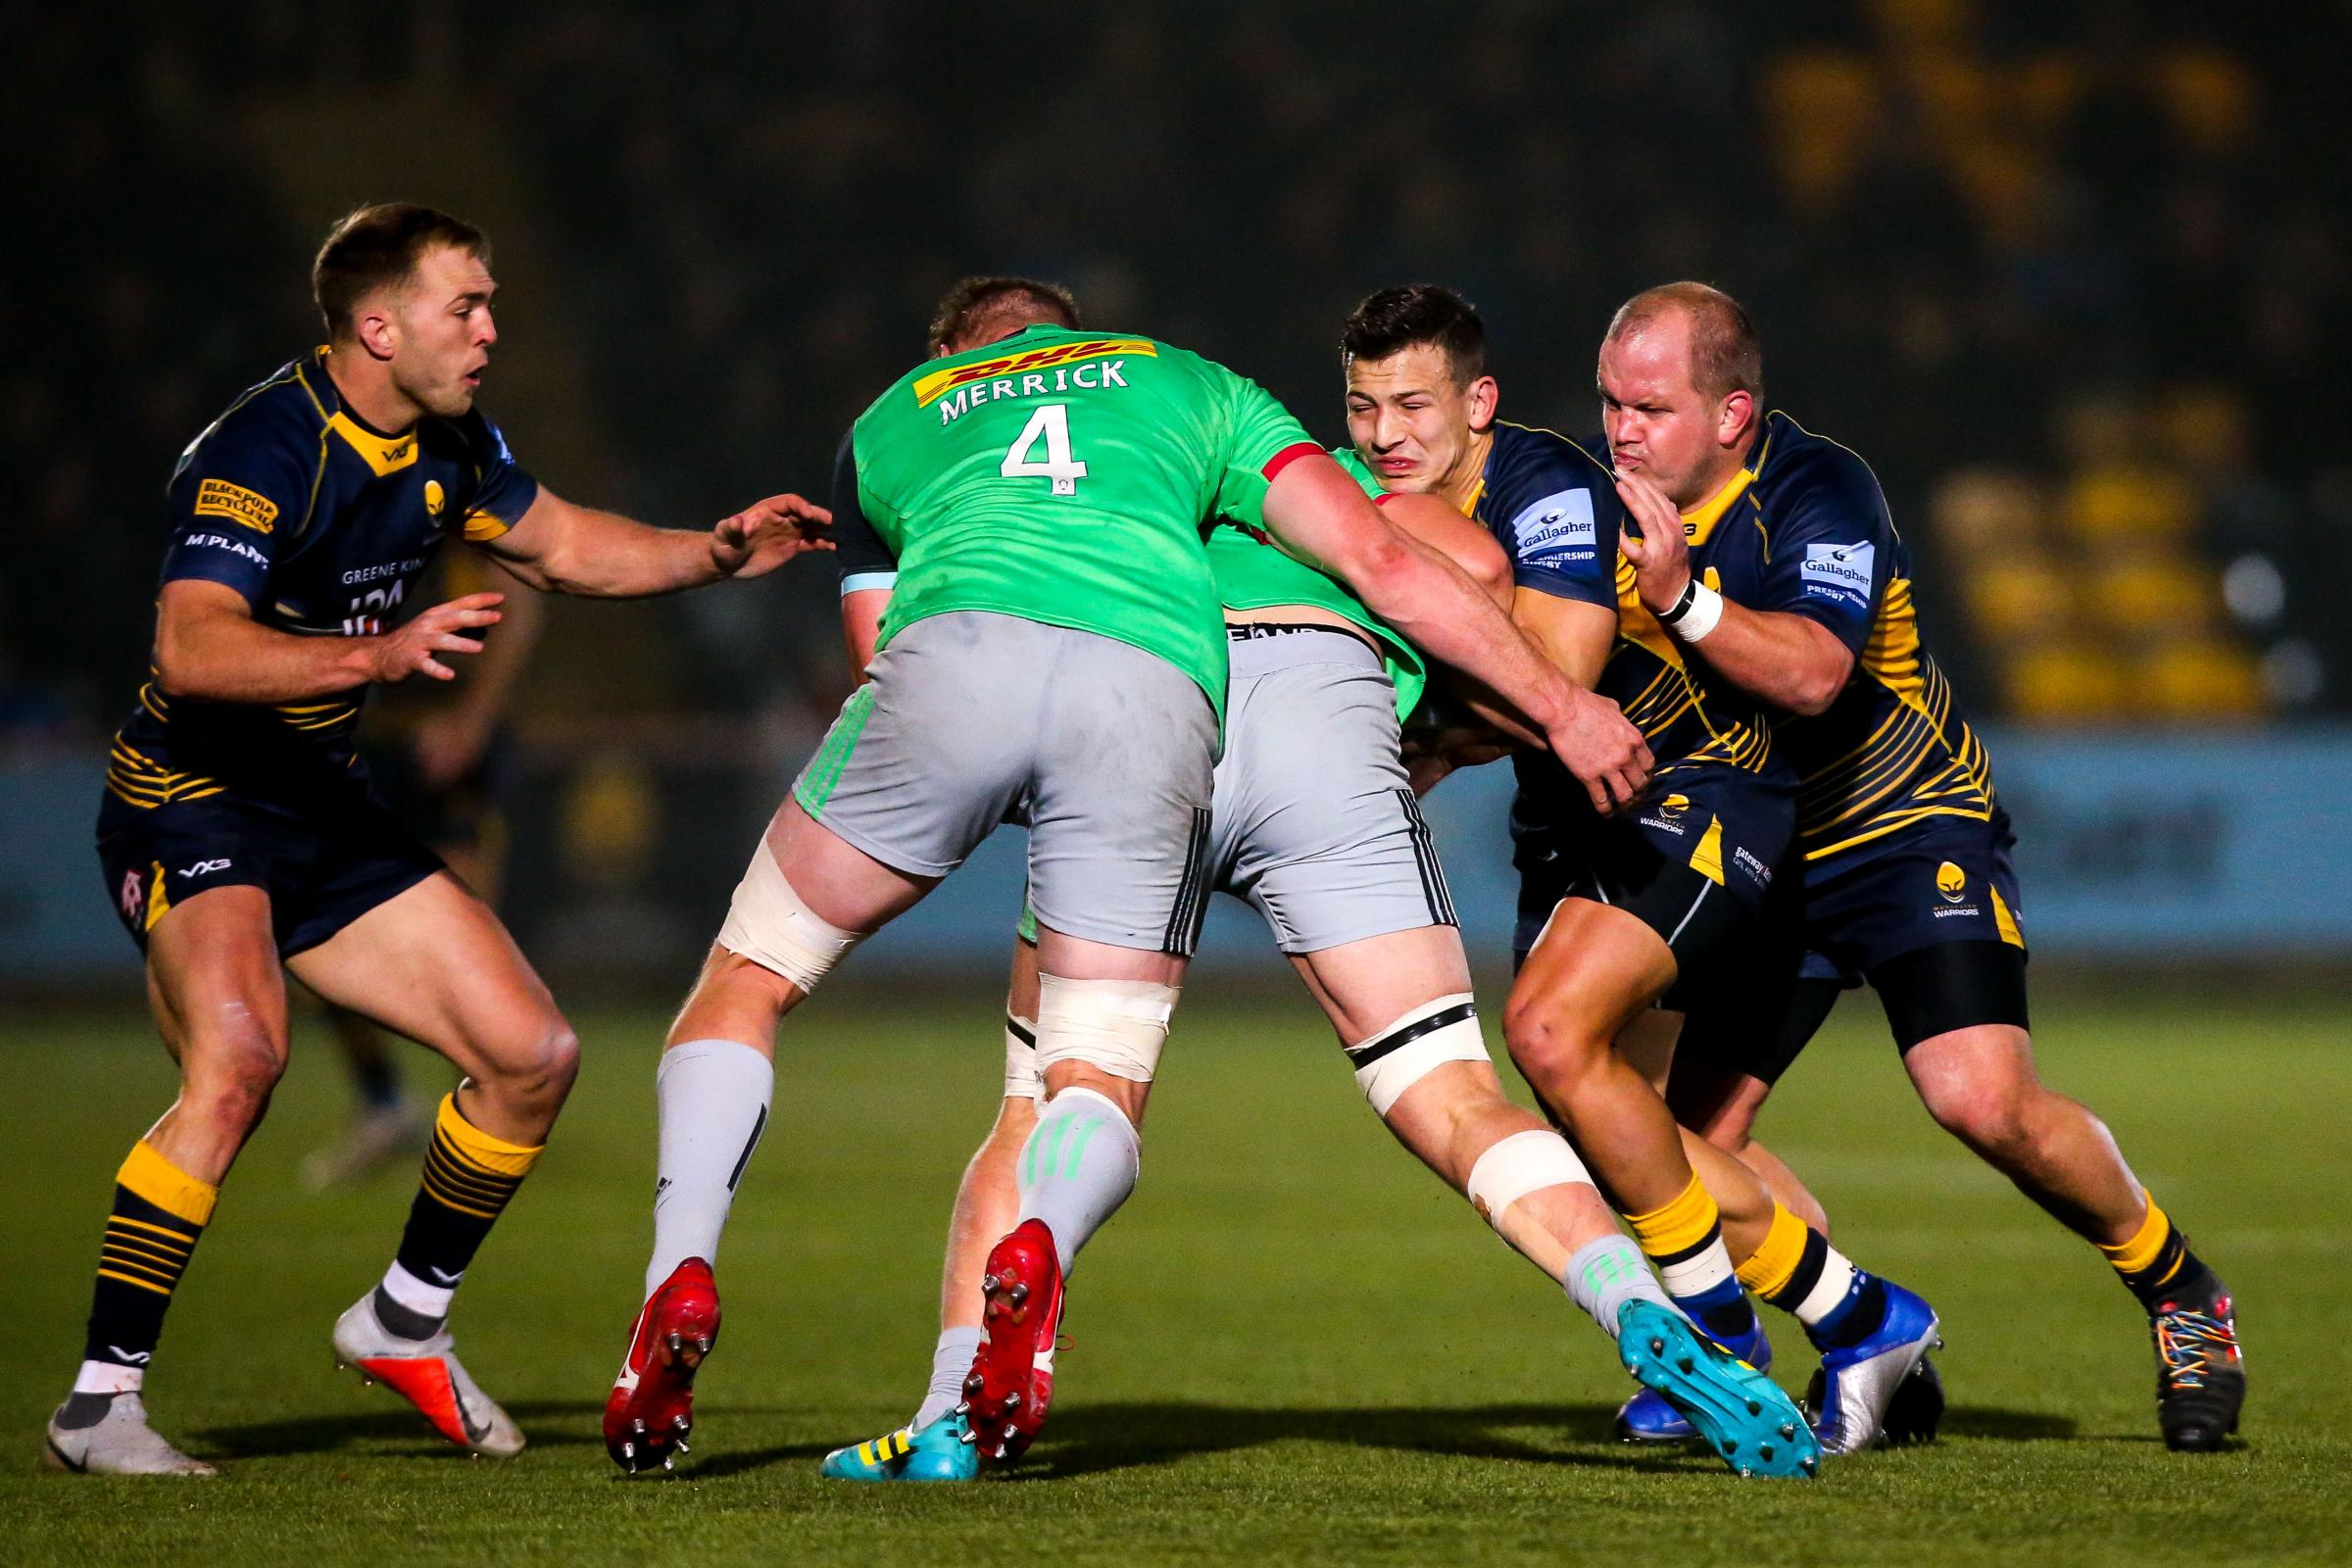 IN THE THICK OF IT... Ryan Mills gets stuck in against Harlequins. PIC: Robbie Stephenson/JMP